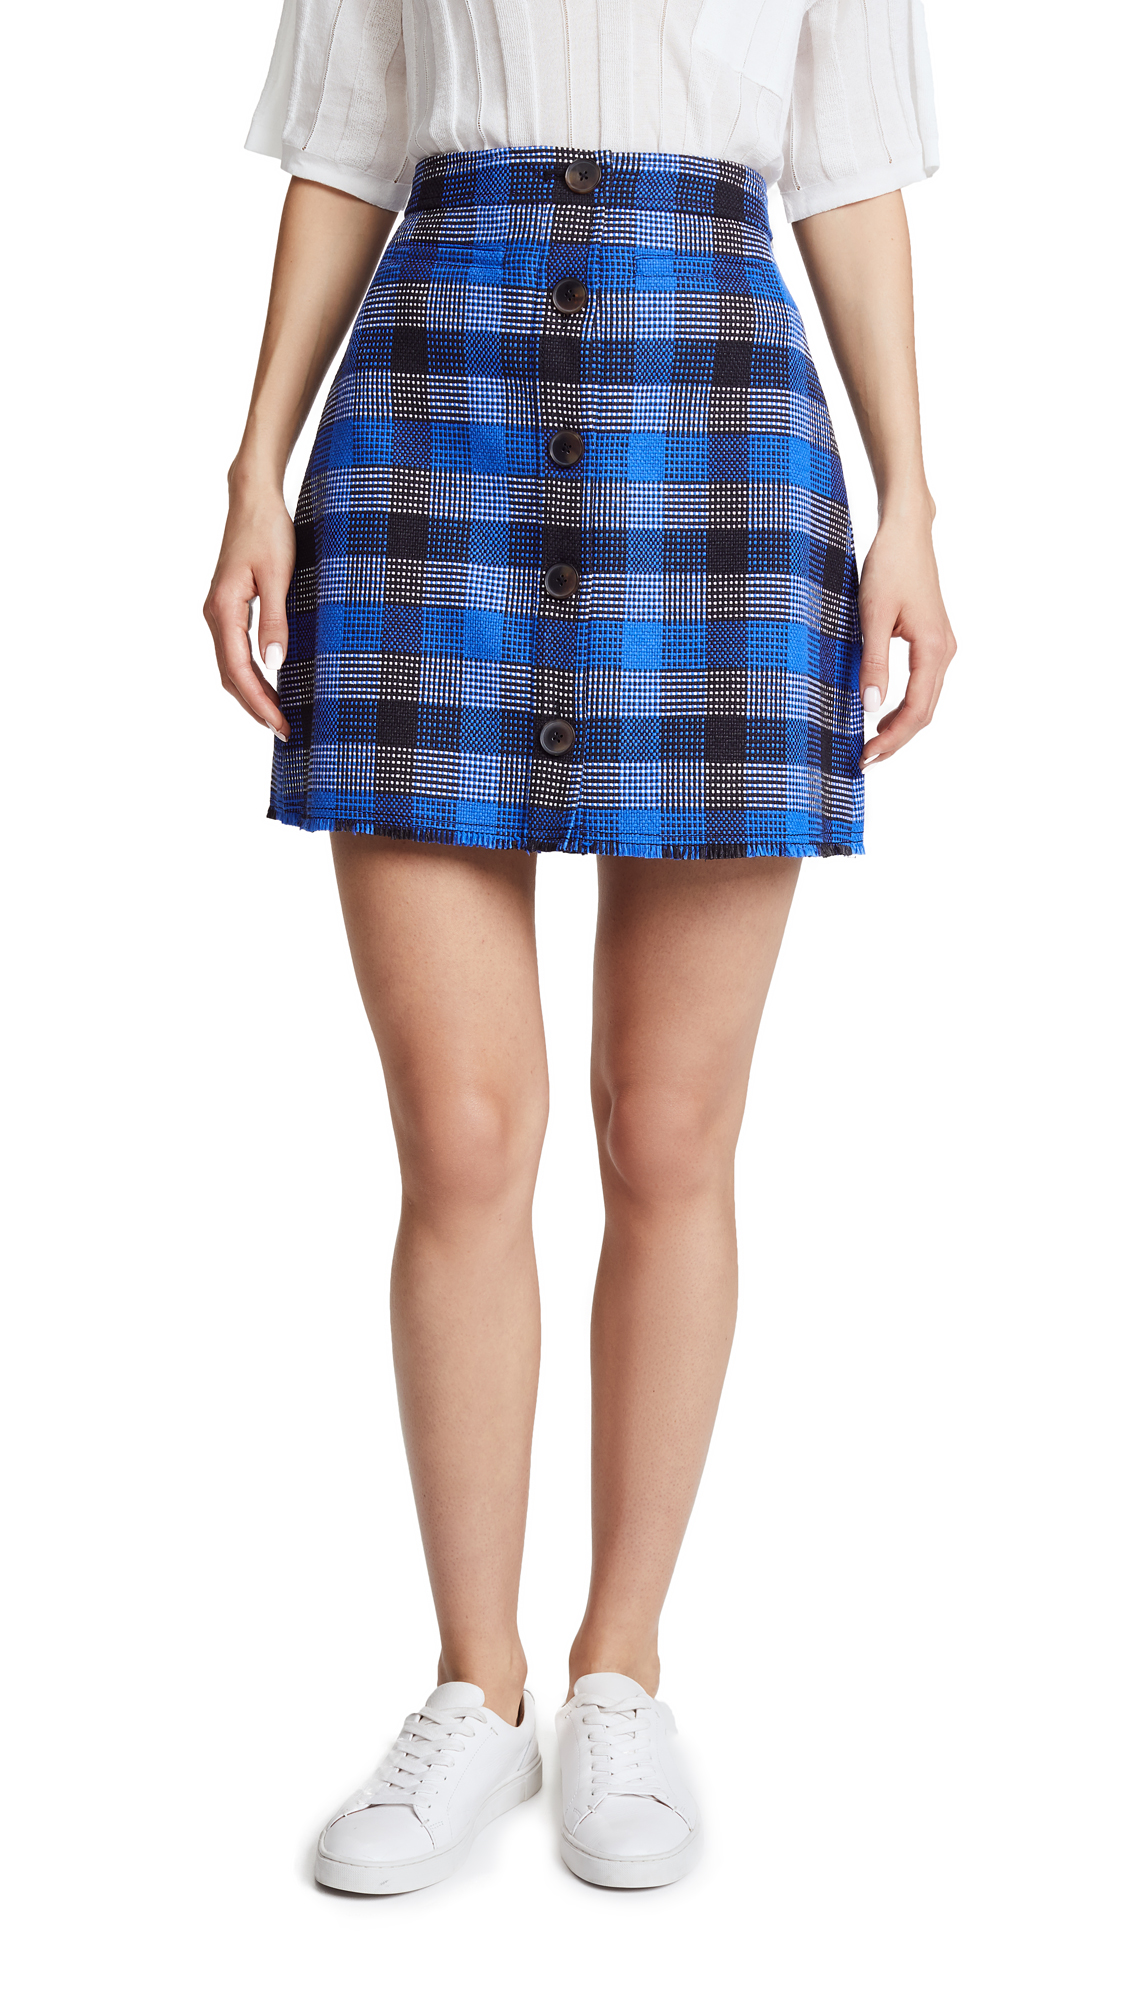 Derek Lam 10 Crosby Miniskirt In Blue